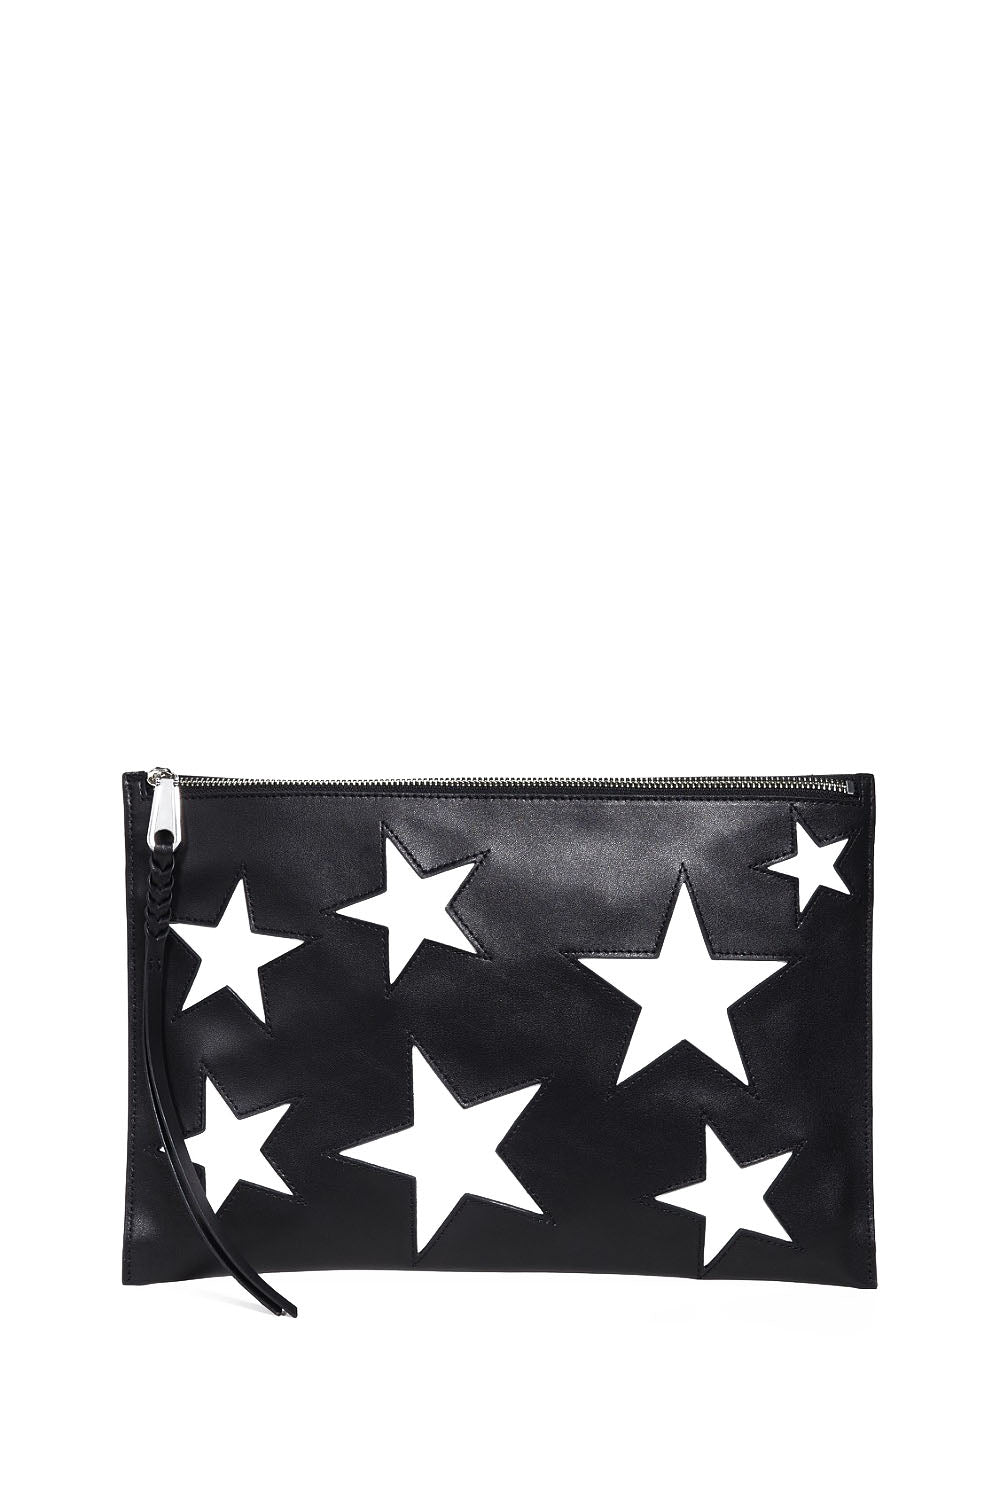 MULTI STAR LARGE ZIP CLUTCH